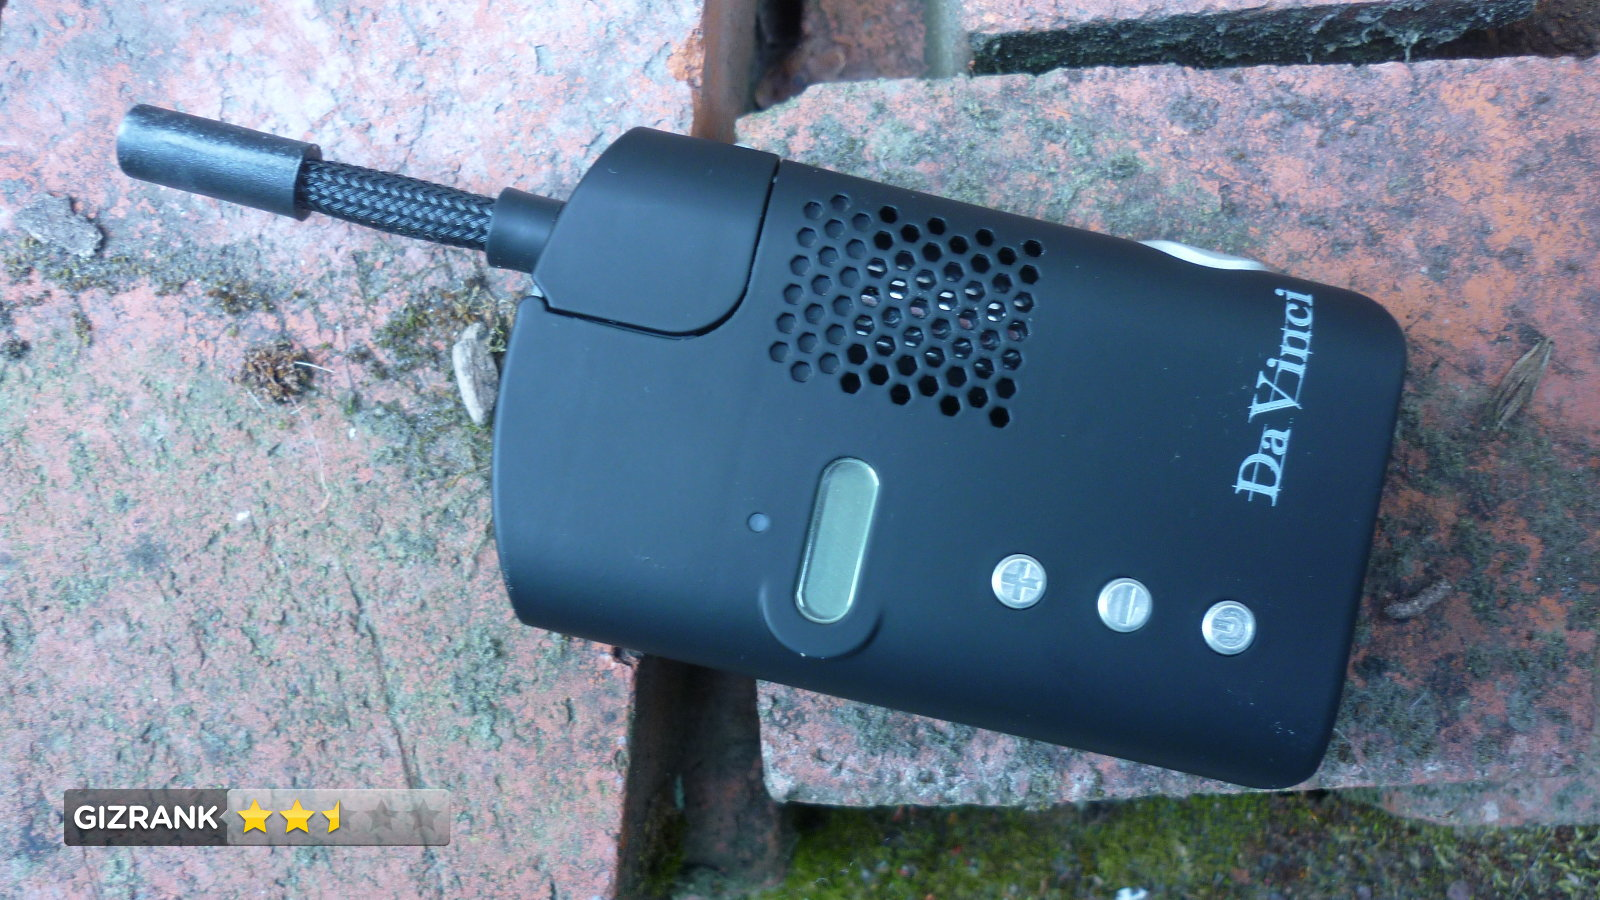 Click here to read Da Vinci Mobile Vaporizer Lightning Review: Smart, But Not Quite Genius